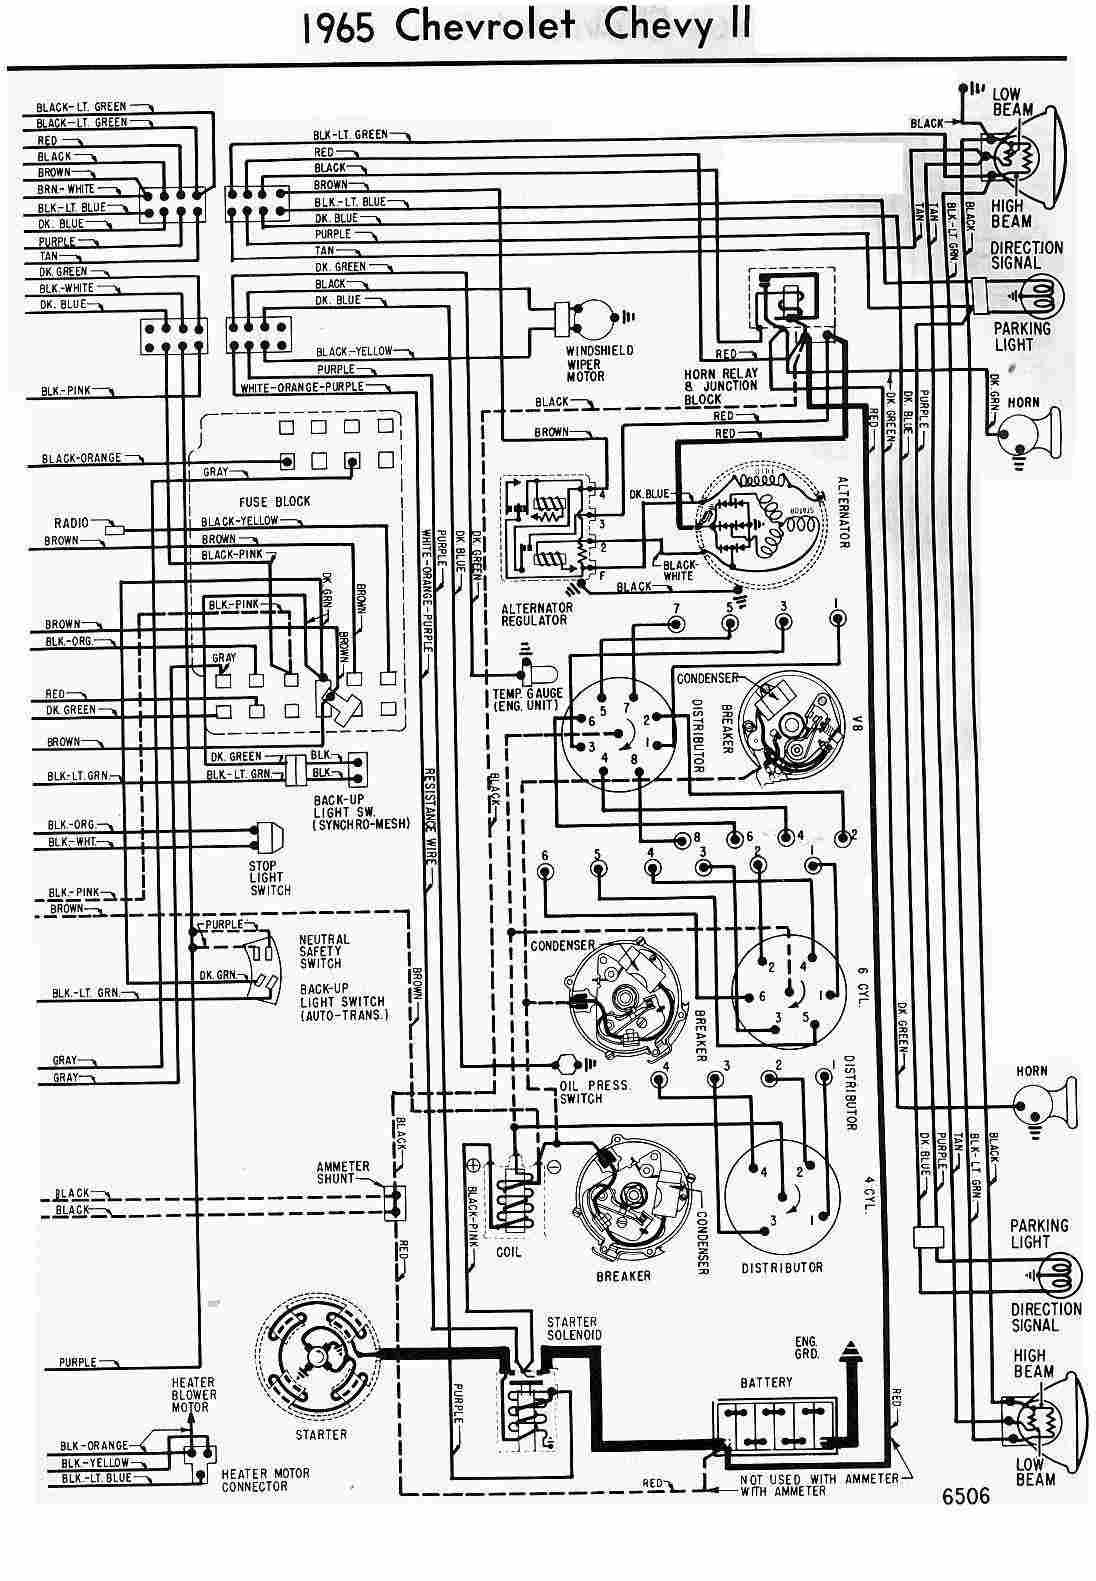 wiring diagram diagram of 1965 chevrolet chevy ii?t=1508393184 chevrolet car manuals, wiring diagrams pdf & fault codes 1967 chevy ii wiring diagram at honlapkeszites.co